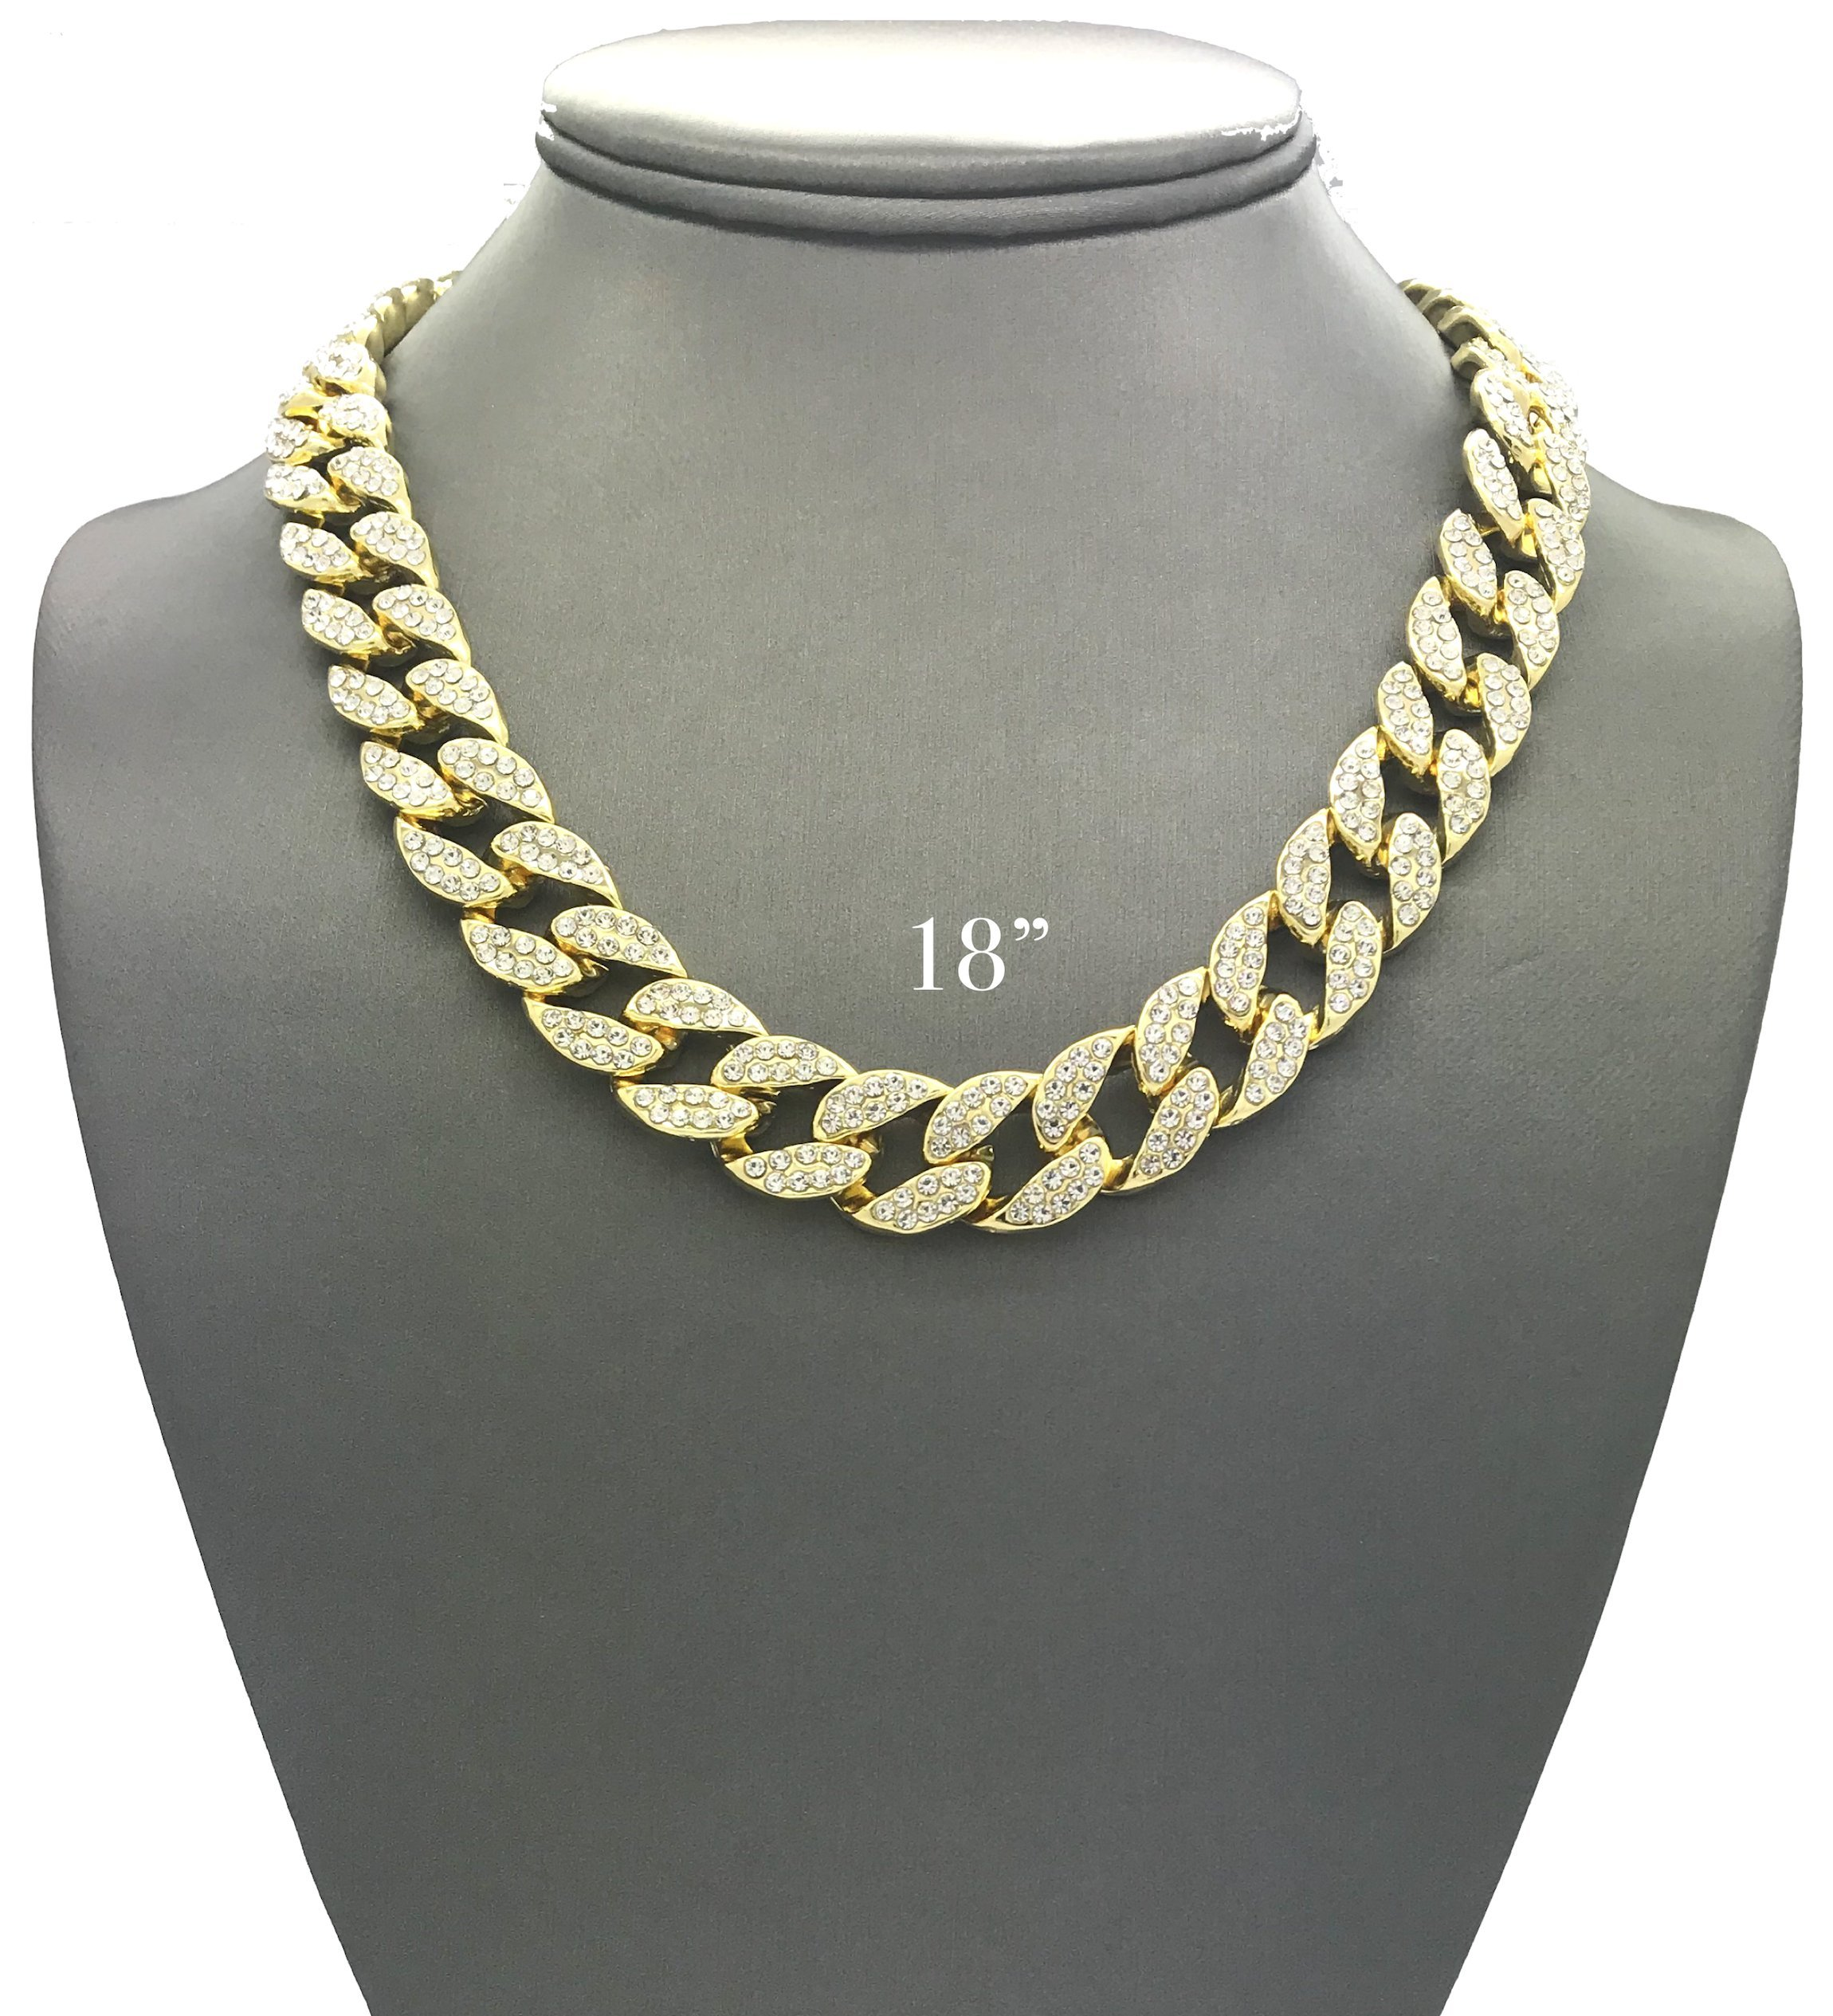 Mens Iced Out Hip Hop Gold tone CZ Miami Cuban Link Chain Choker Necklace (18'')